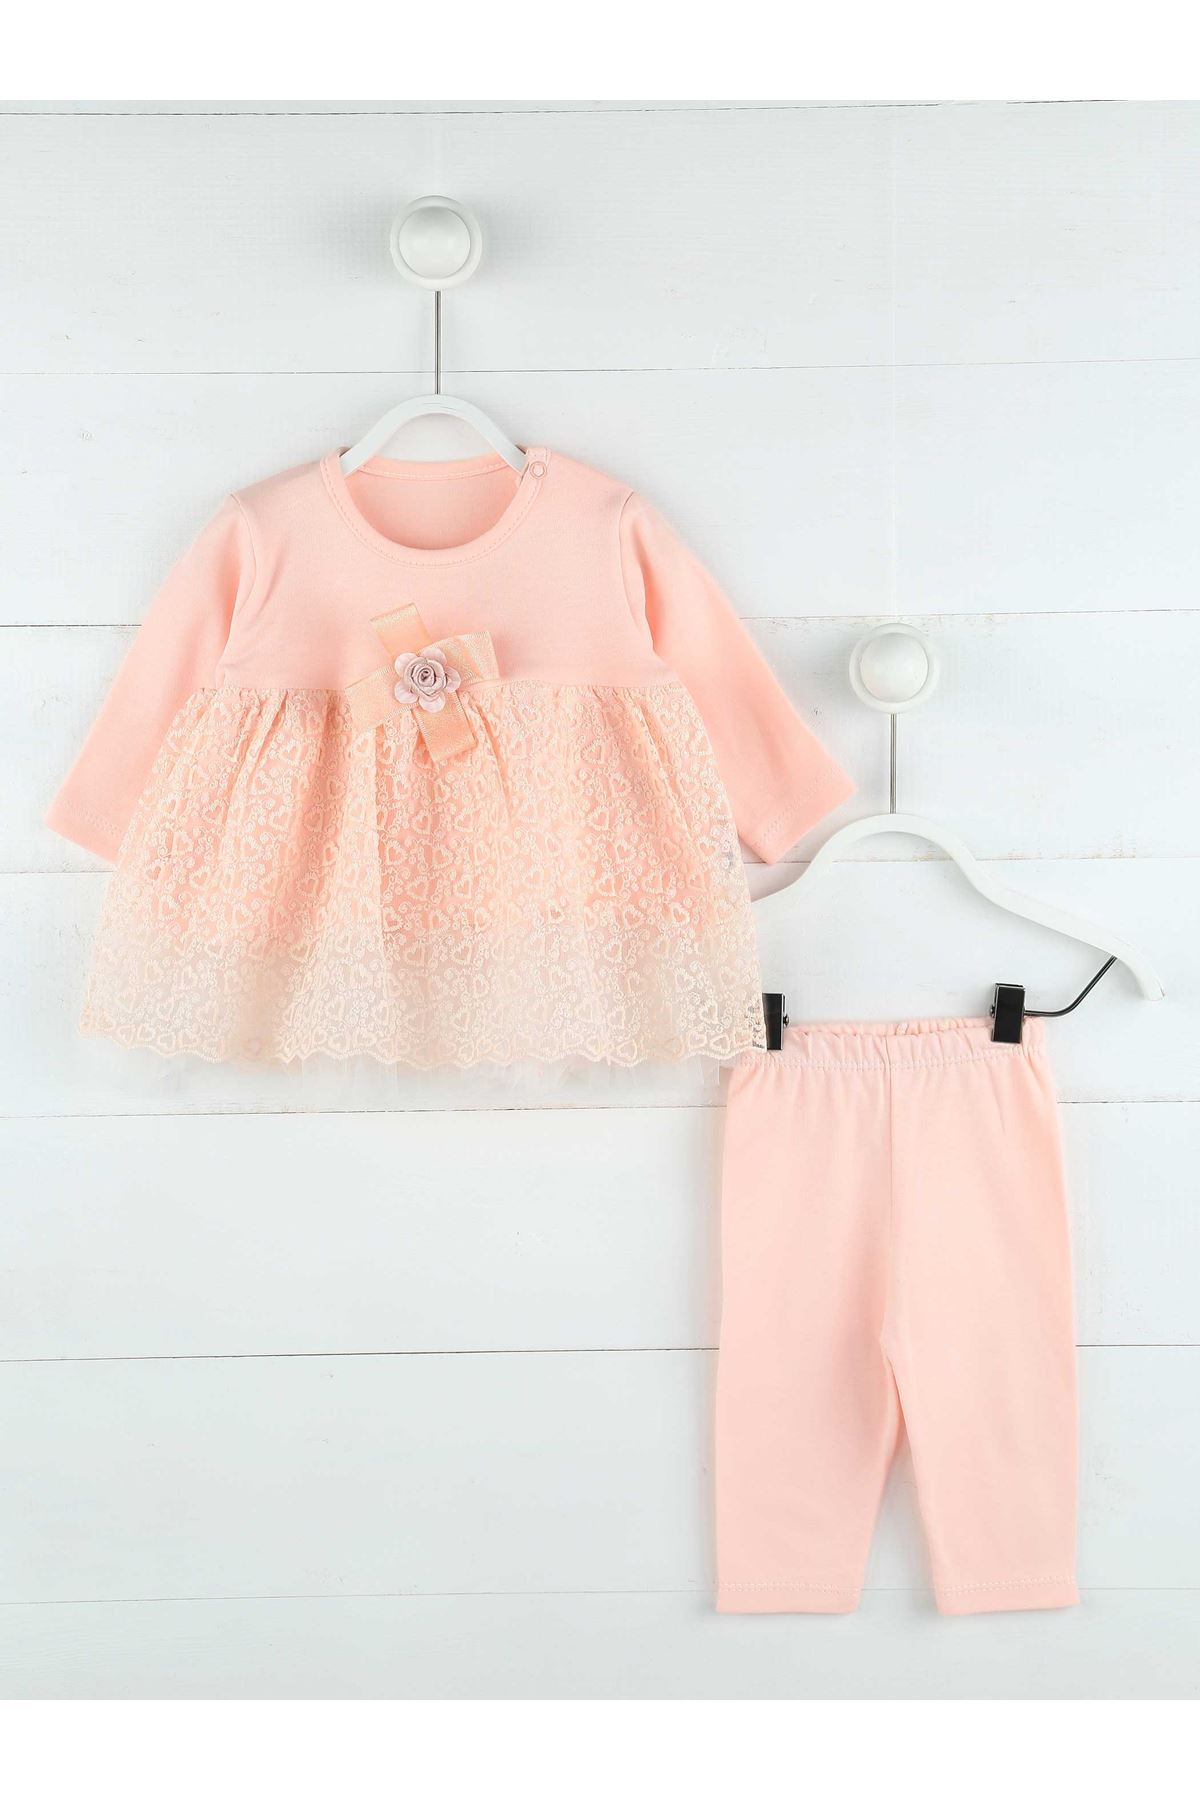 Baby Girls Clothing Sets Summer Vest Two Piece Sleeveless Children Sets Fashion Girls Clothes Suit Casual Dot Outfits